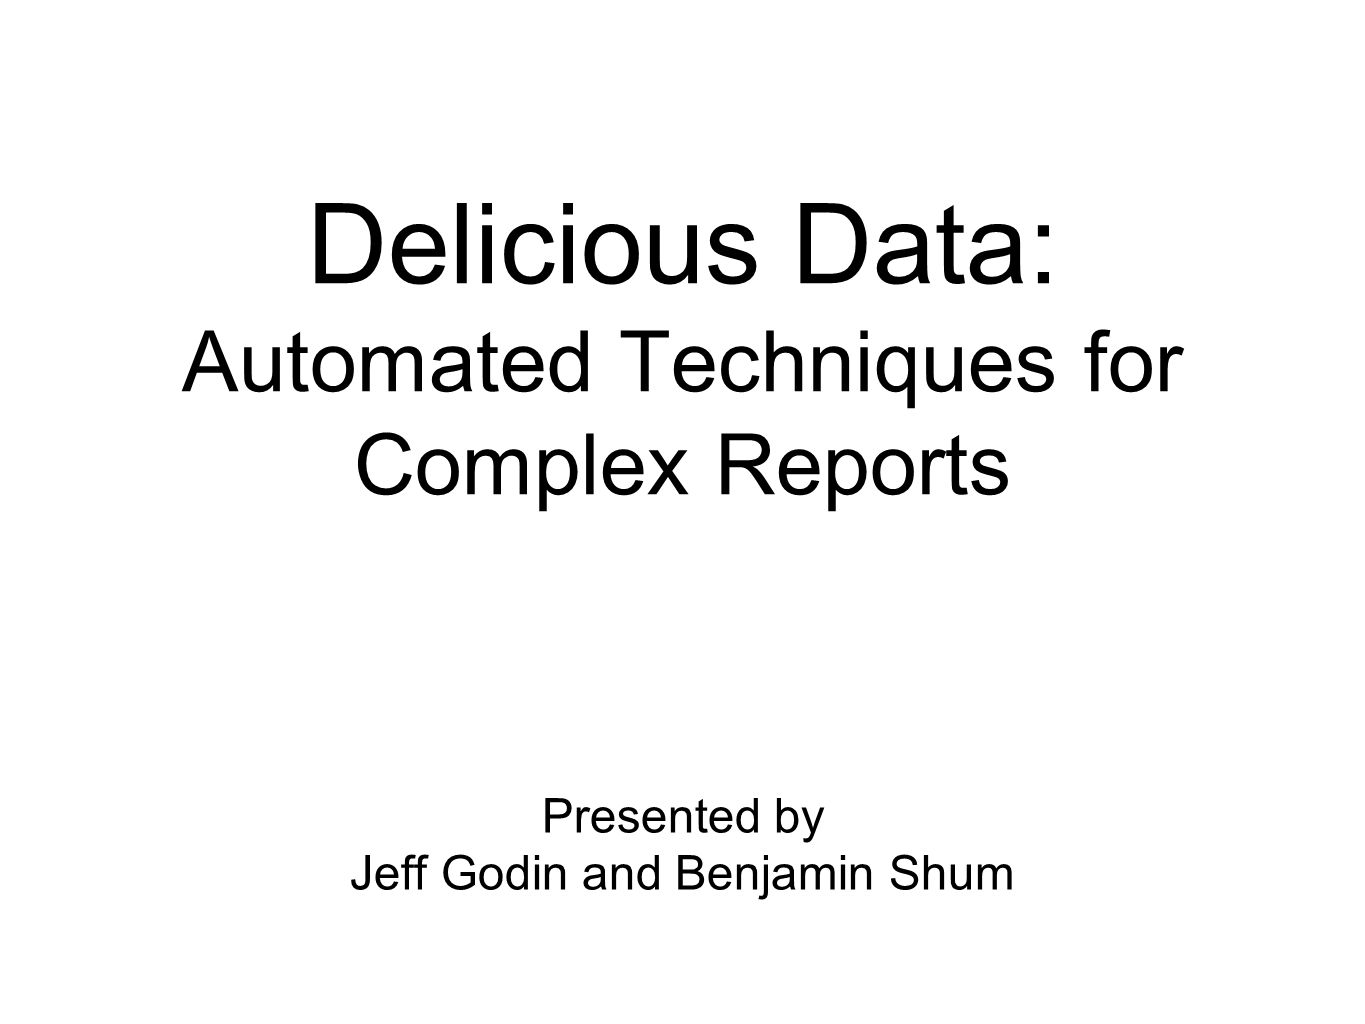 Delicious Data: Automated Techniques for Complex Reports Presented by Jeff Godin and Benjamin Shum